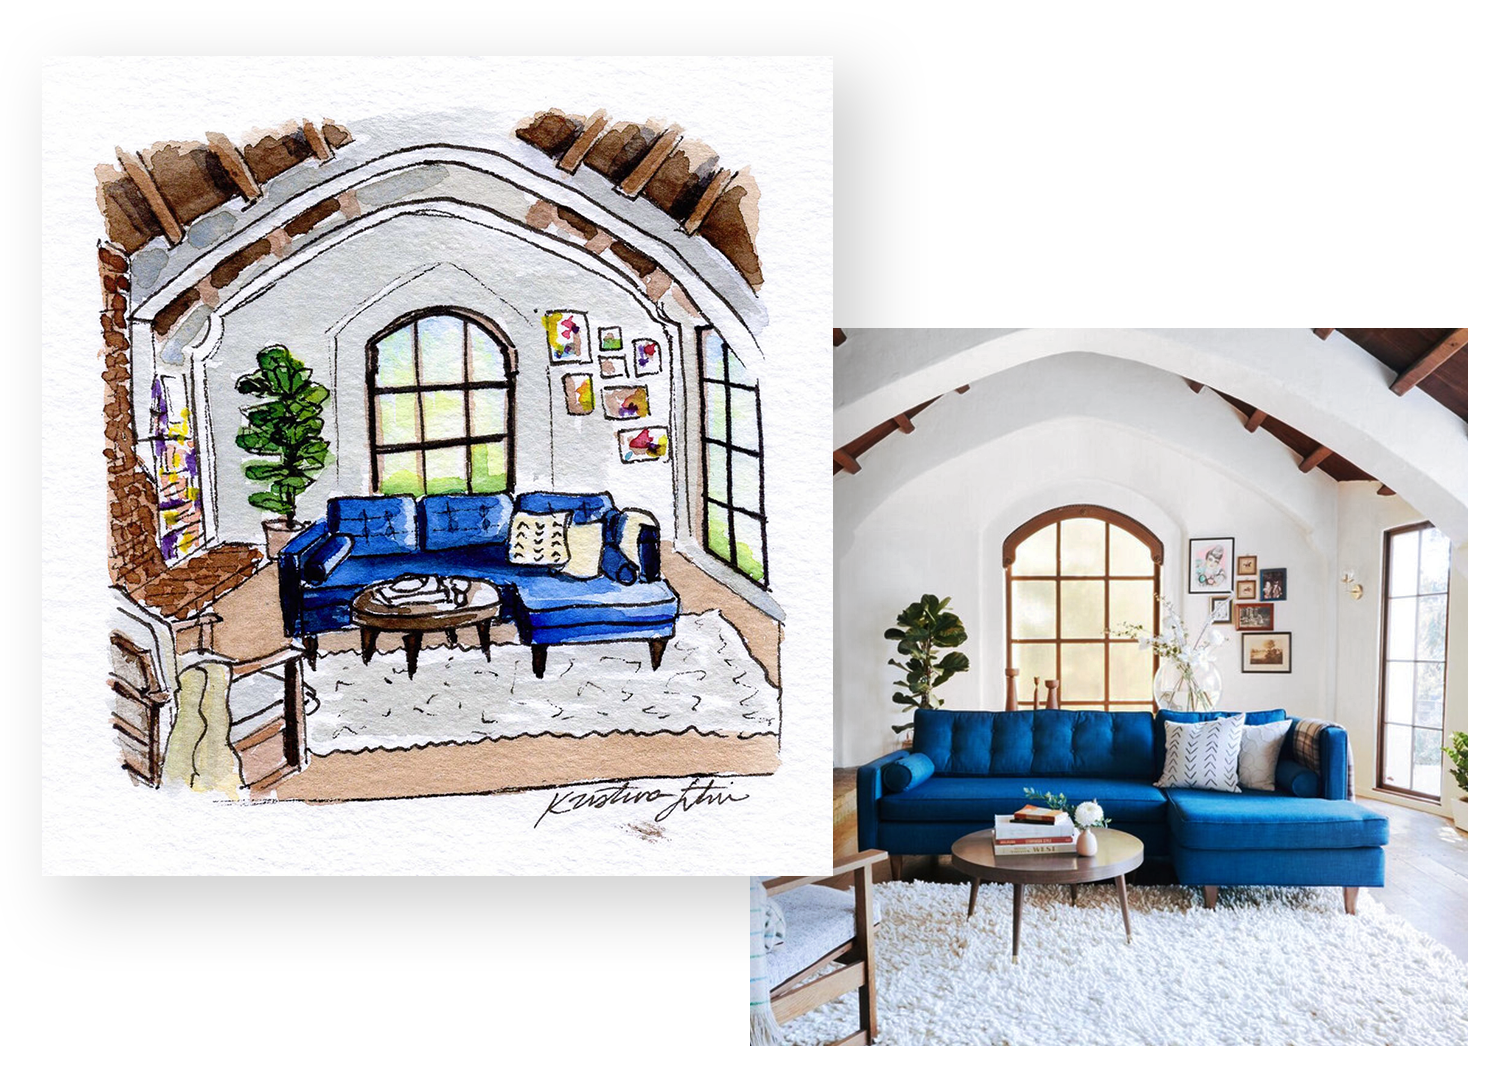 A 1920's Storybook Home - INTERIORS | LIVING ROOMA living room nestled inside a 1920's home boasting an array of charming details including, stained-glass windows, rounded walkways, latched door handles, and moments of exposed brick.